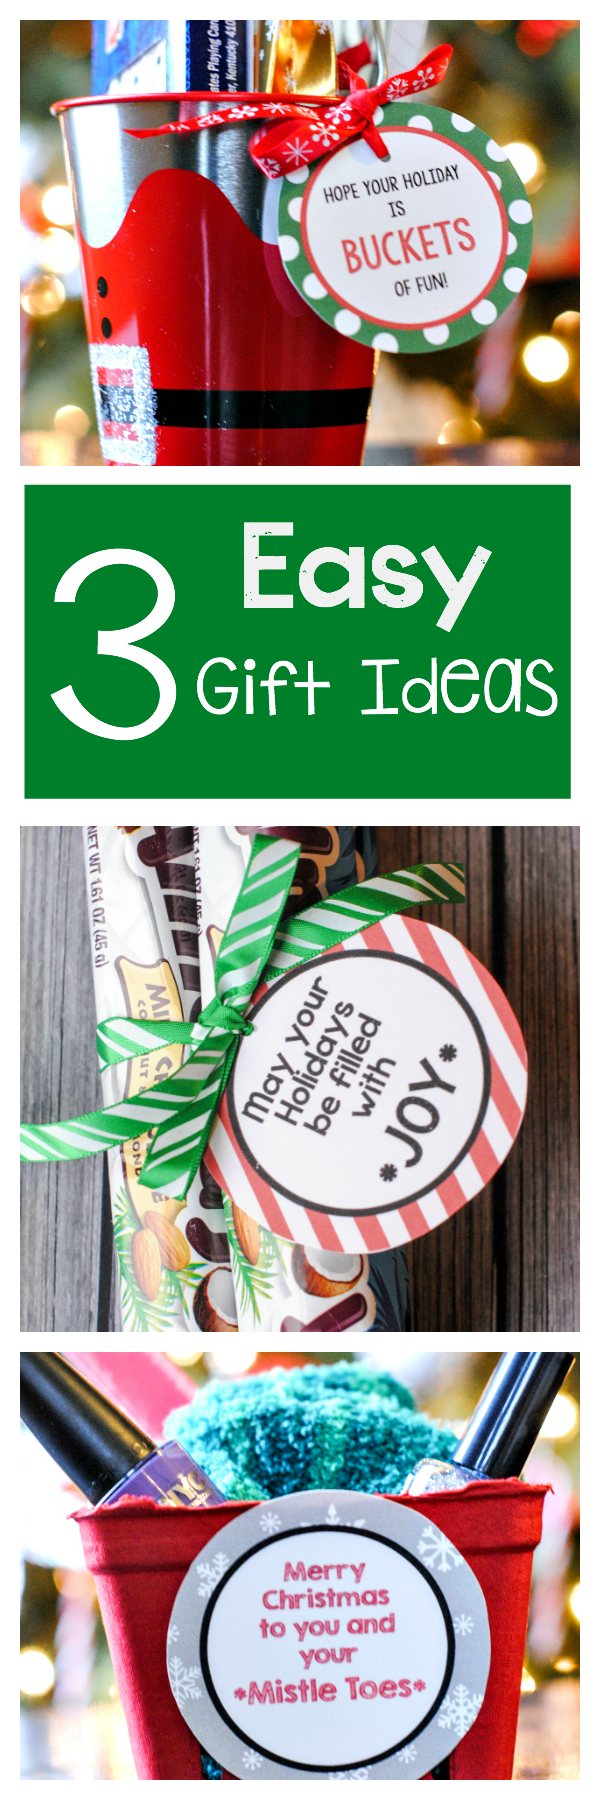 Cute Christmas Ideas For Friends.3 Easy Christmas Gift Ideas For Friends Crazy Little Projects